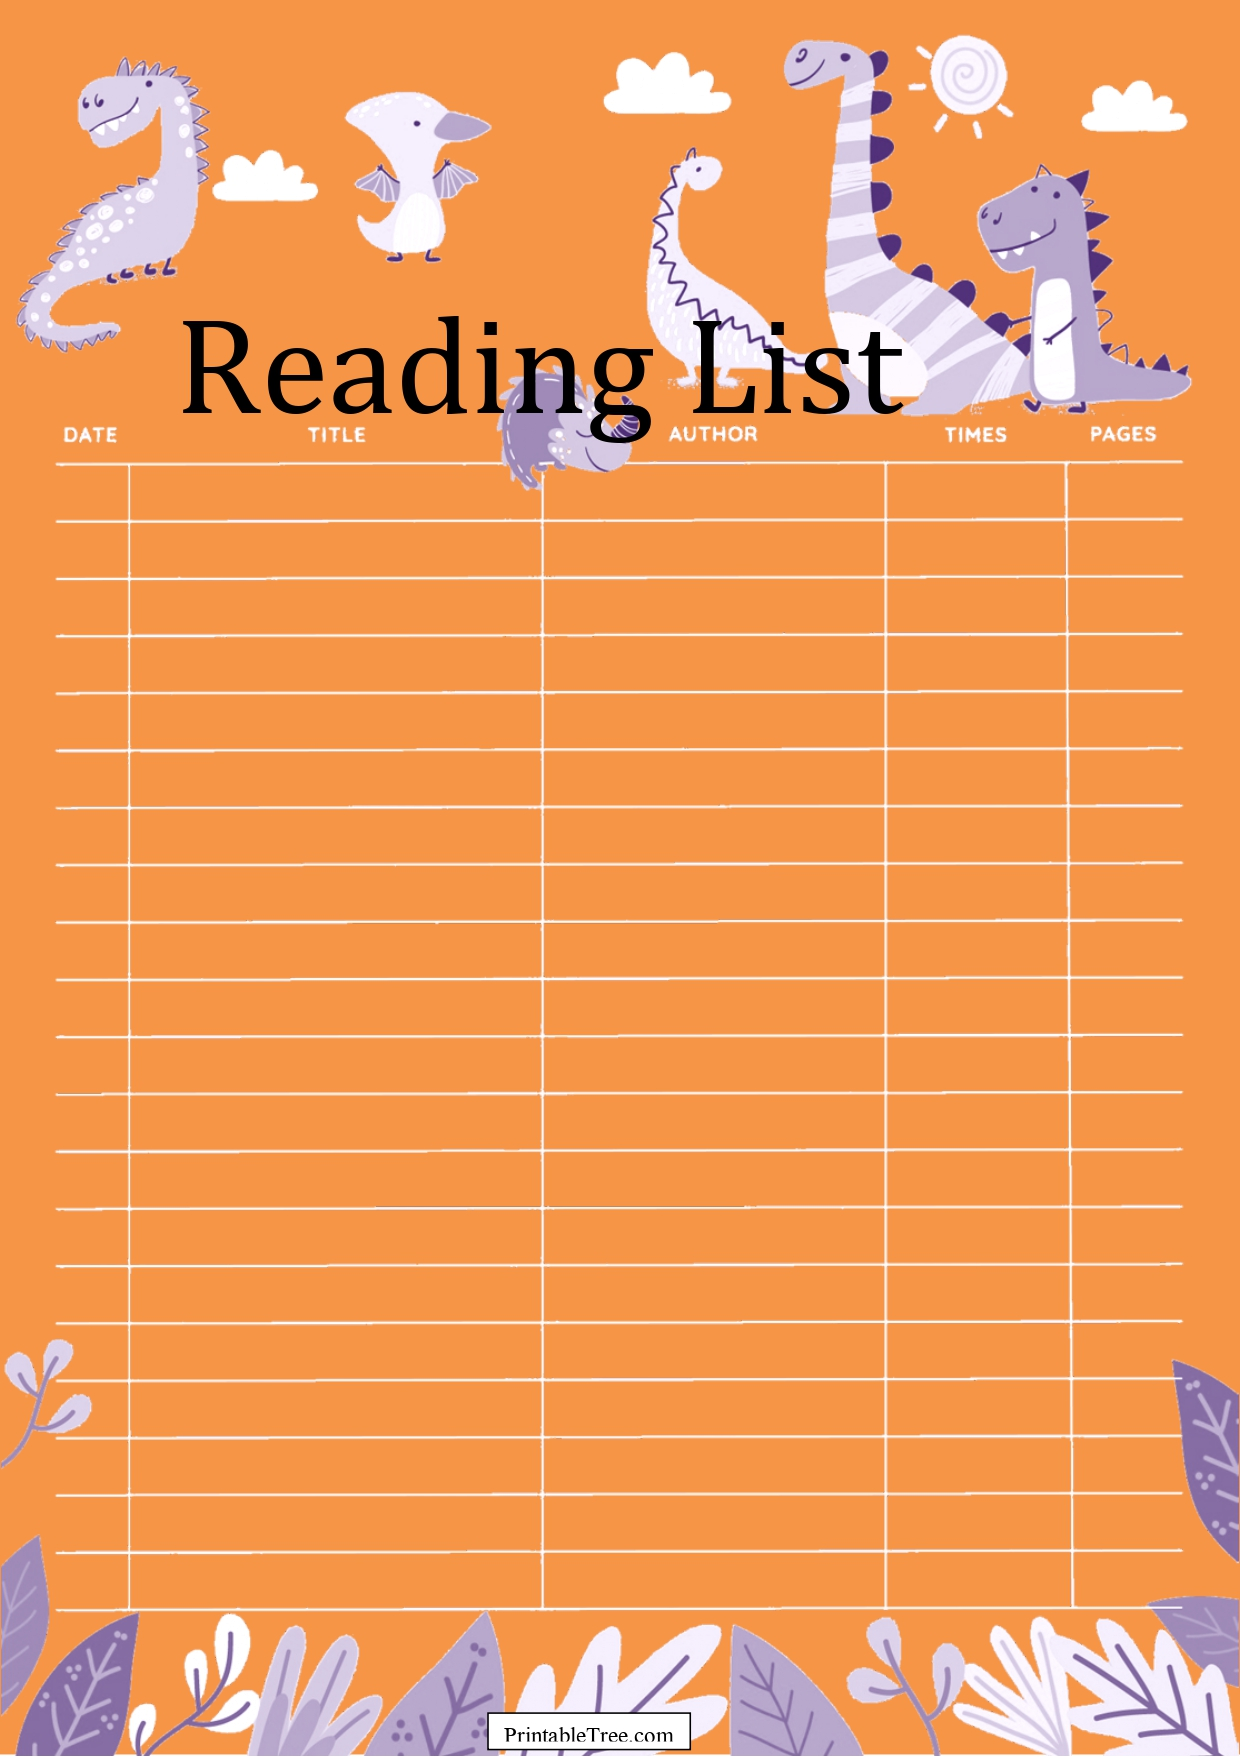 Dinosaurs Reading List Template For Kids